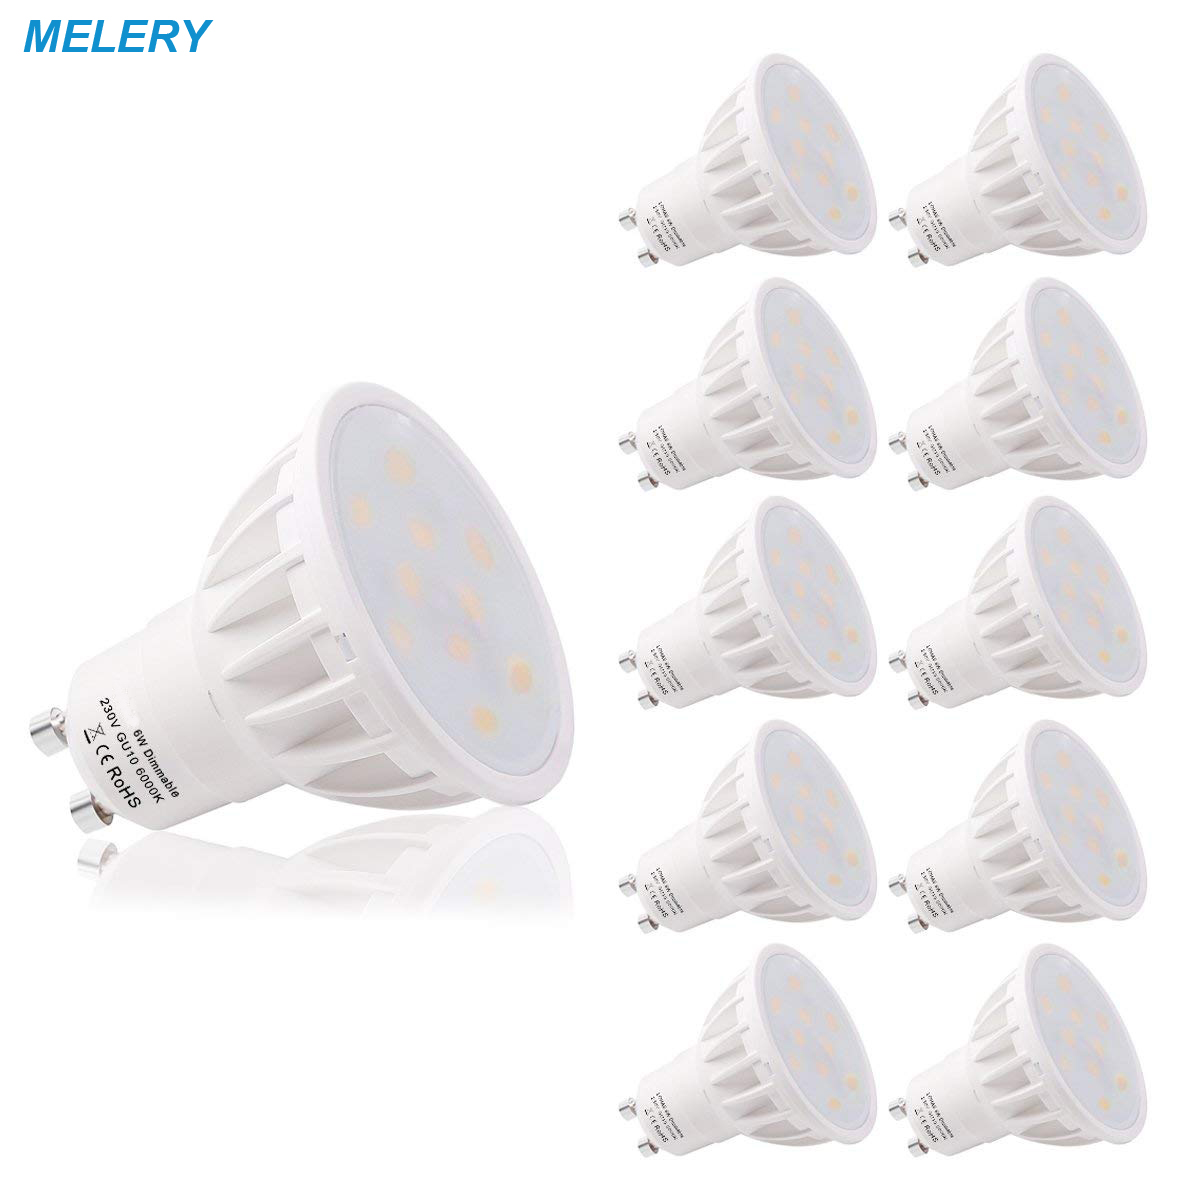 Spot Light Dimmable GU10 Base 6W LED Beautiful 6000K 500lm Day White 50W Replacement for Halogen Bulb for Room,Hotel-10PACK